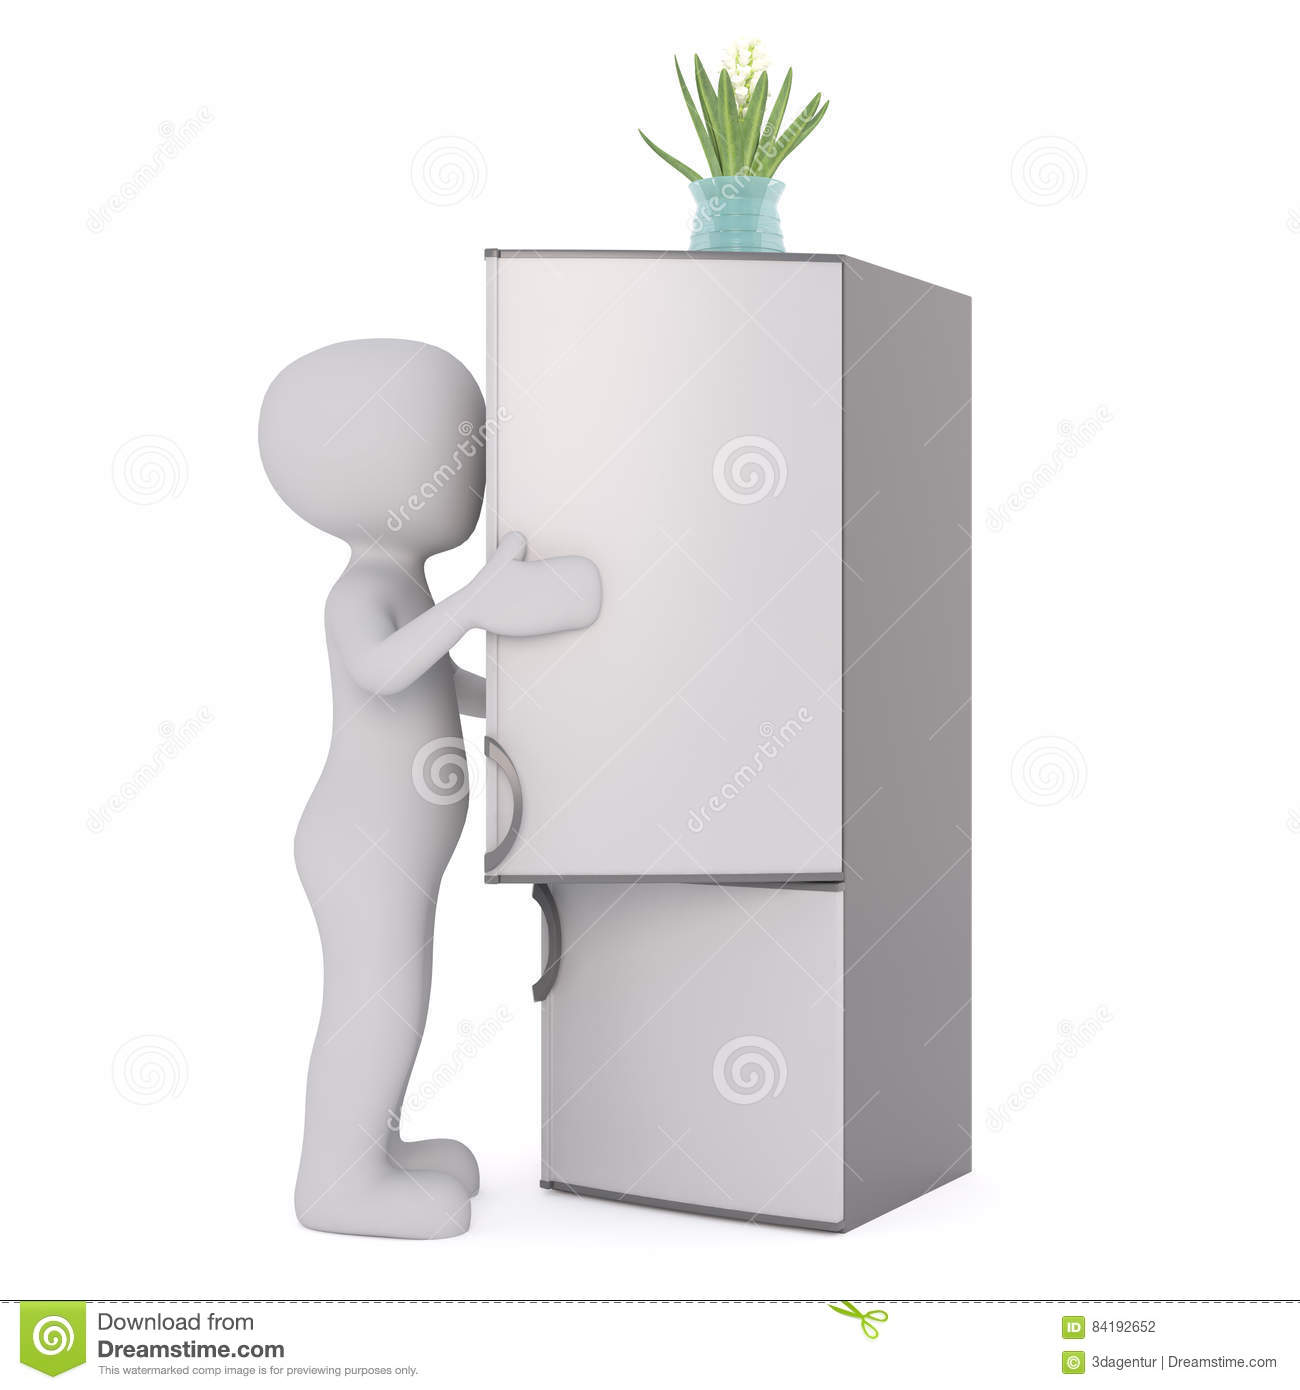 3d Man Opening A Refrigerator Stock Illustration - Illustration of ...